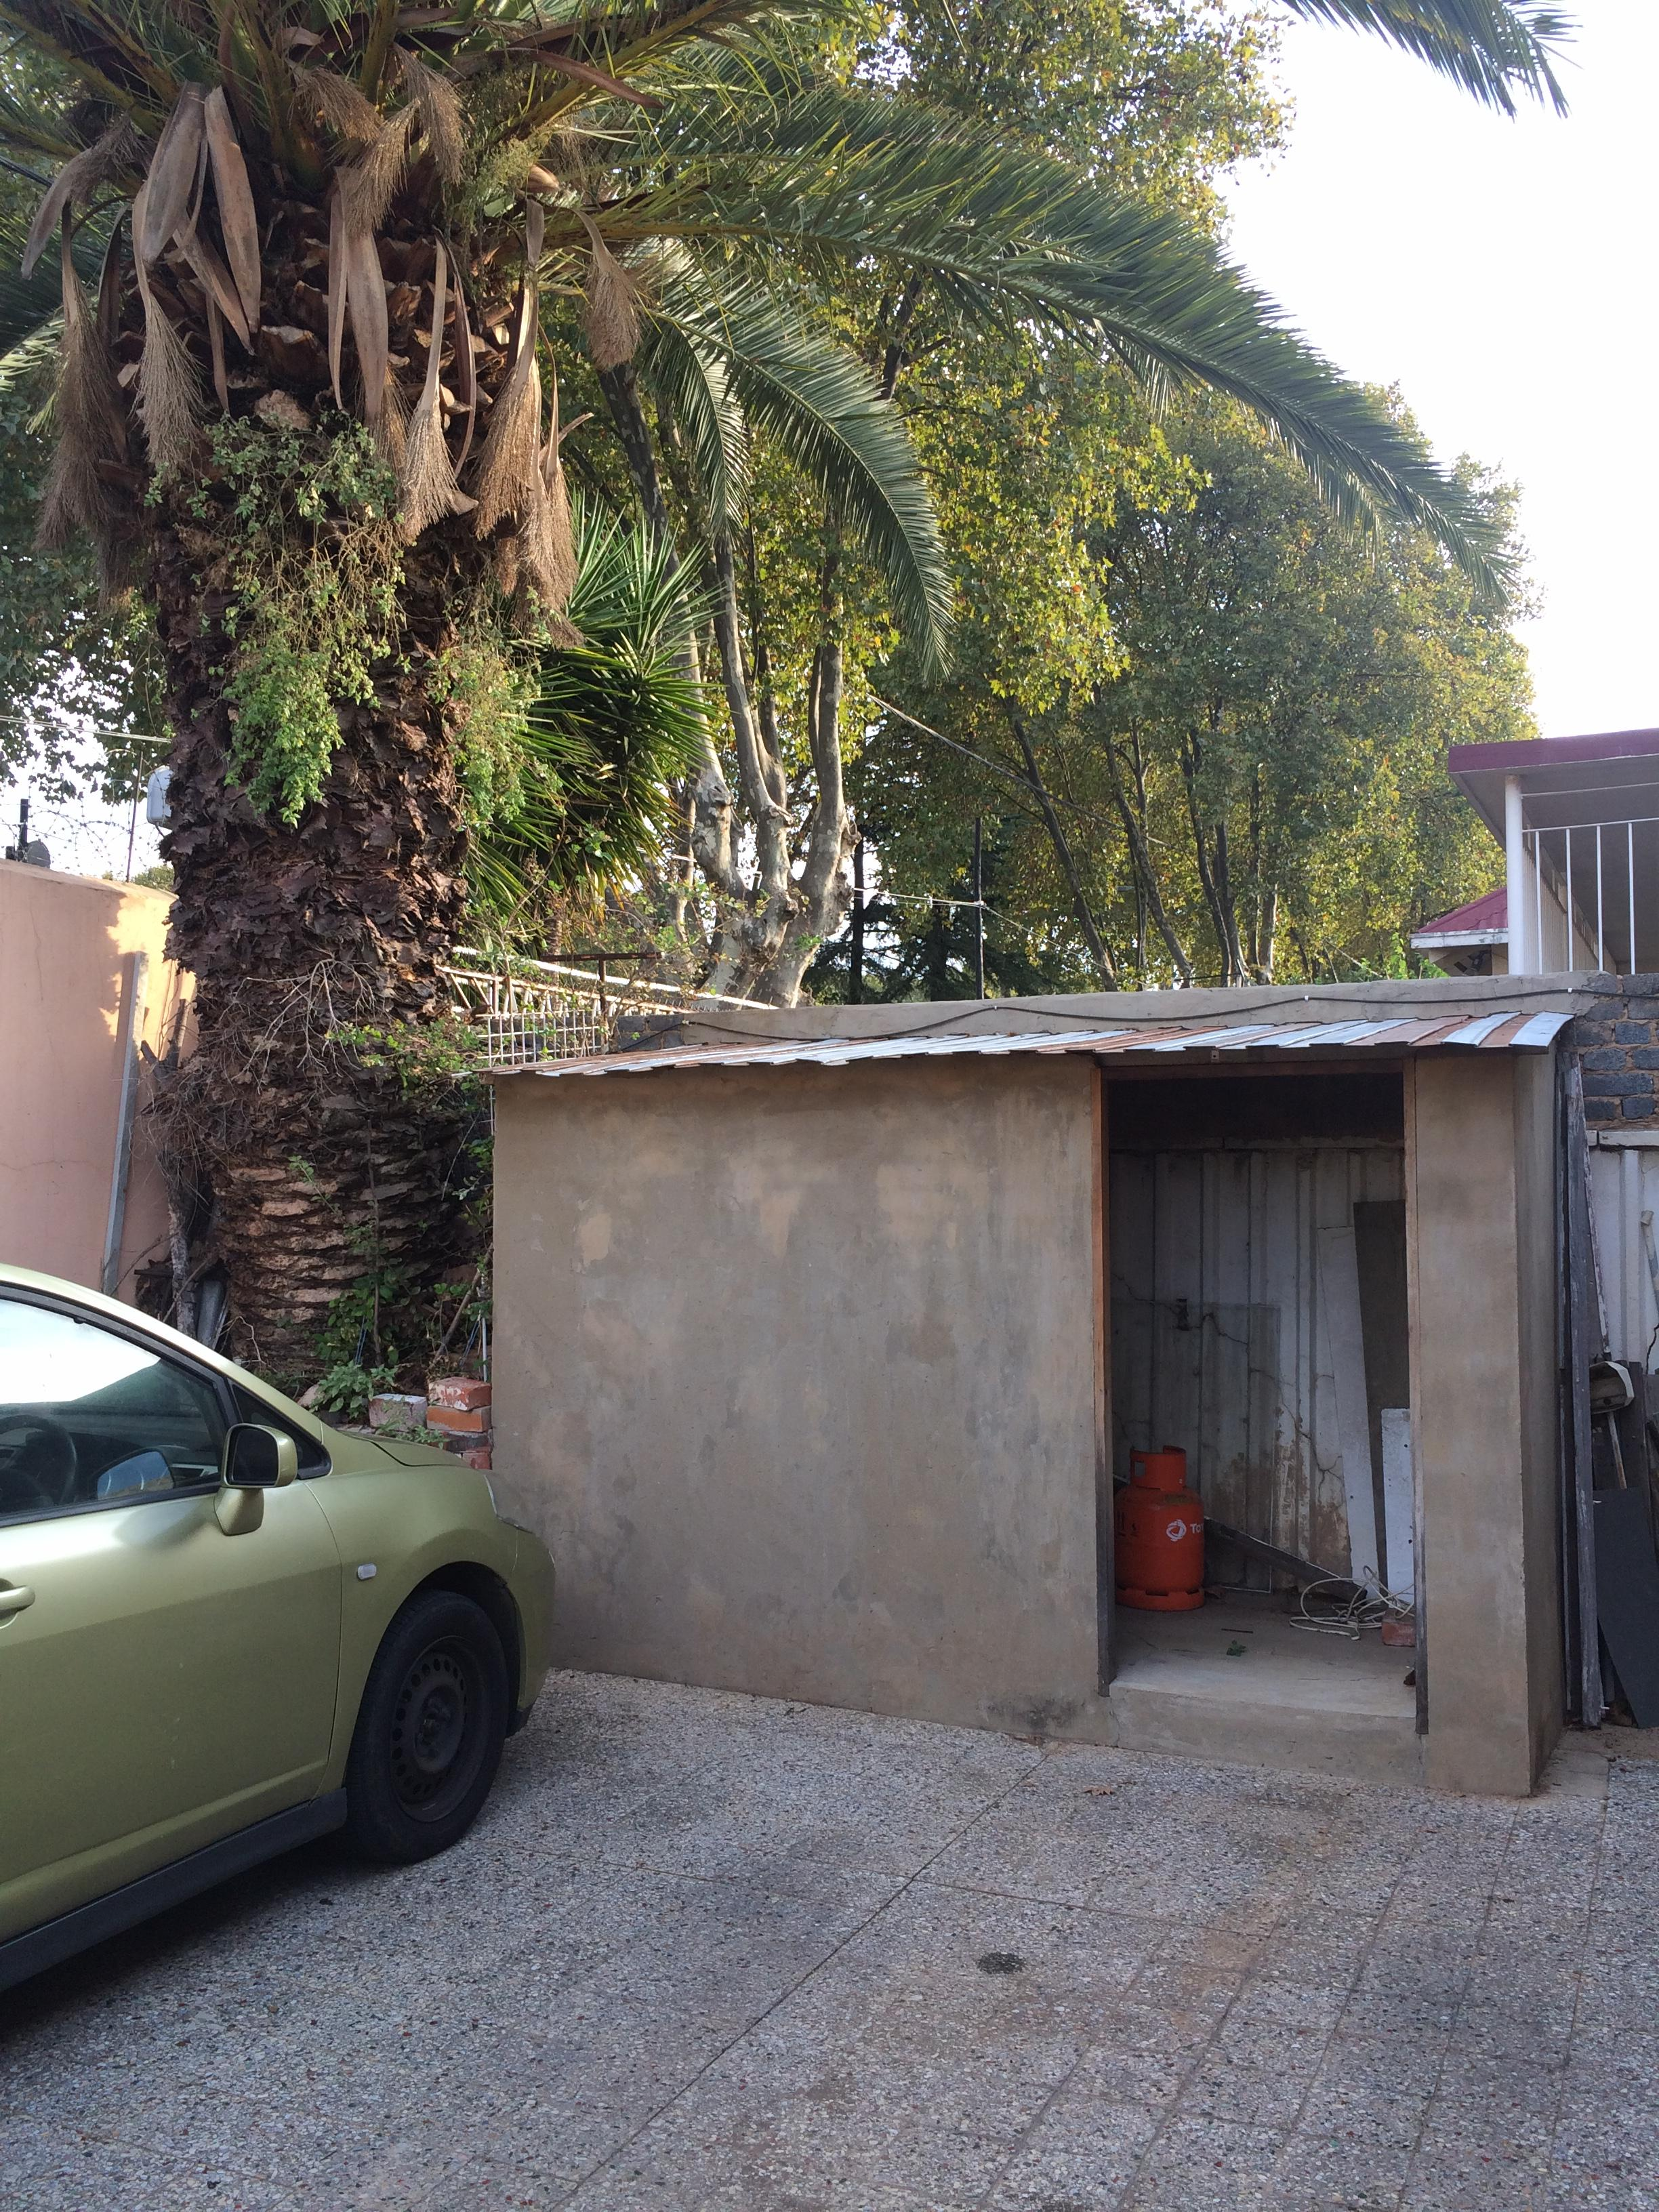 263 8th Ave, Bezvelley JHB, Gauteng, 4 Bedrooms Bedrooms, ,1 BathroomBathrooms,House,Sold,8th Ave,1031